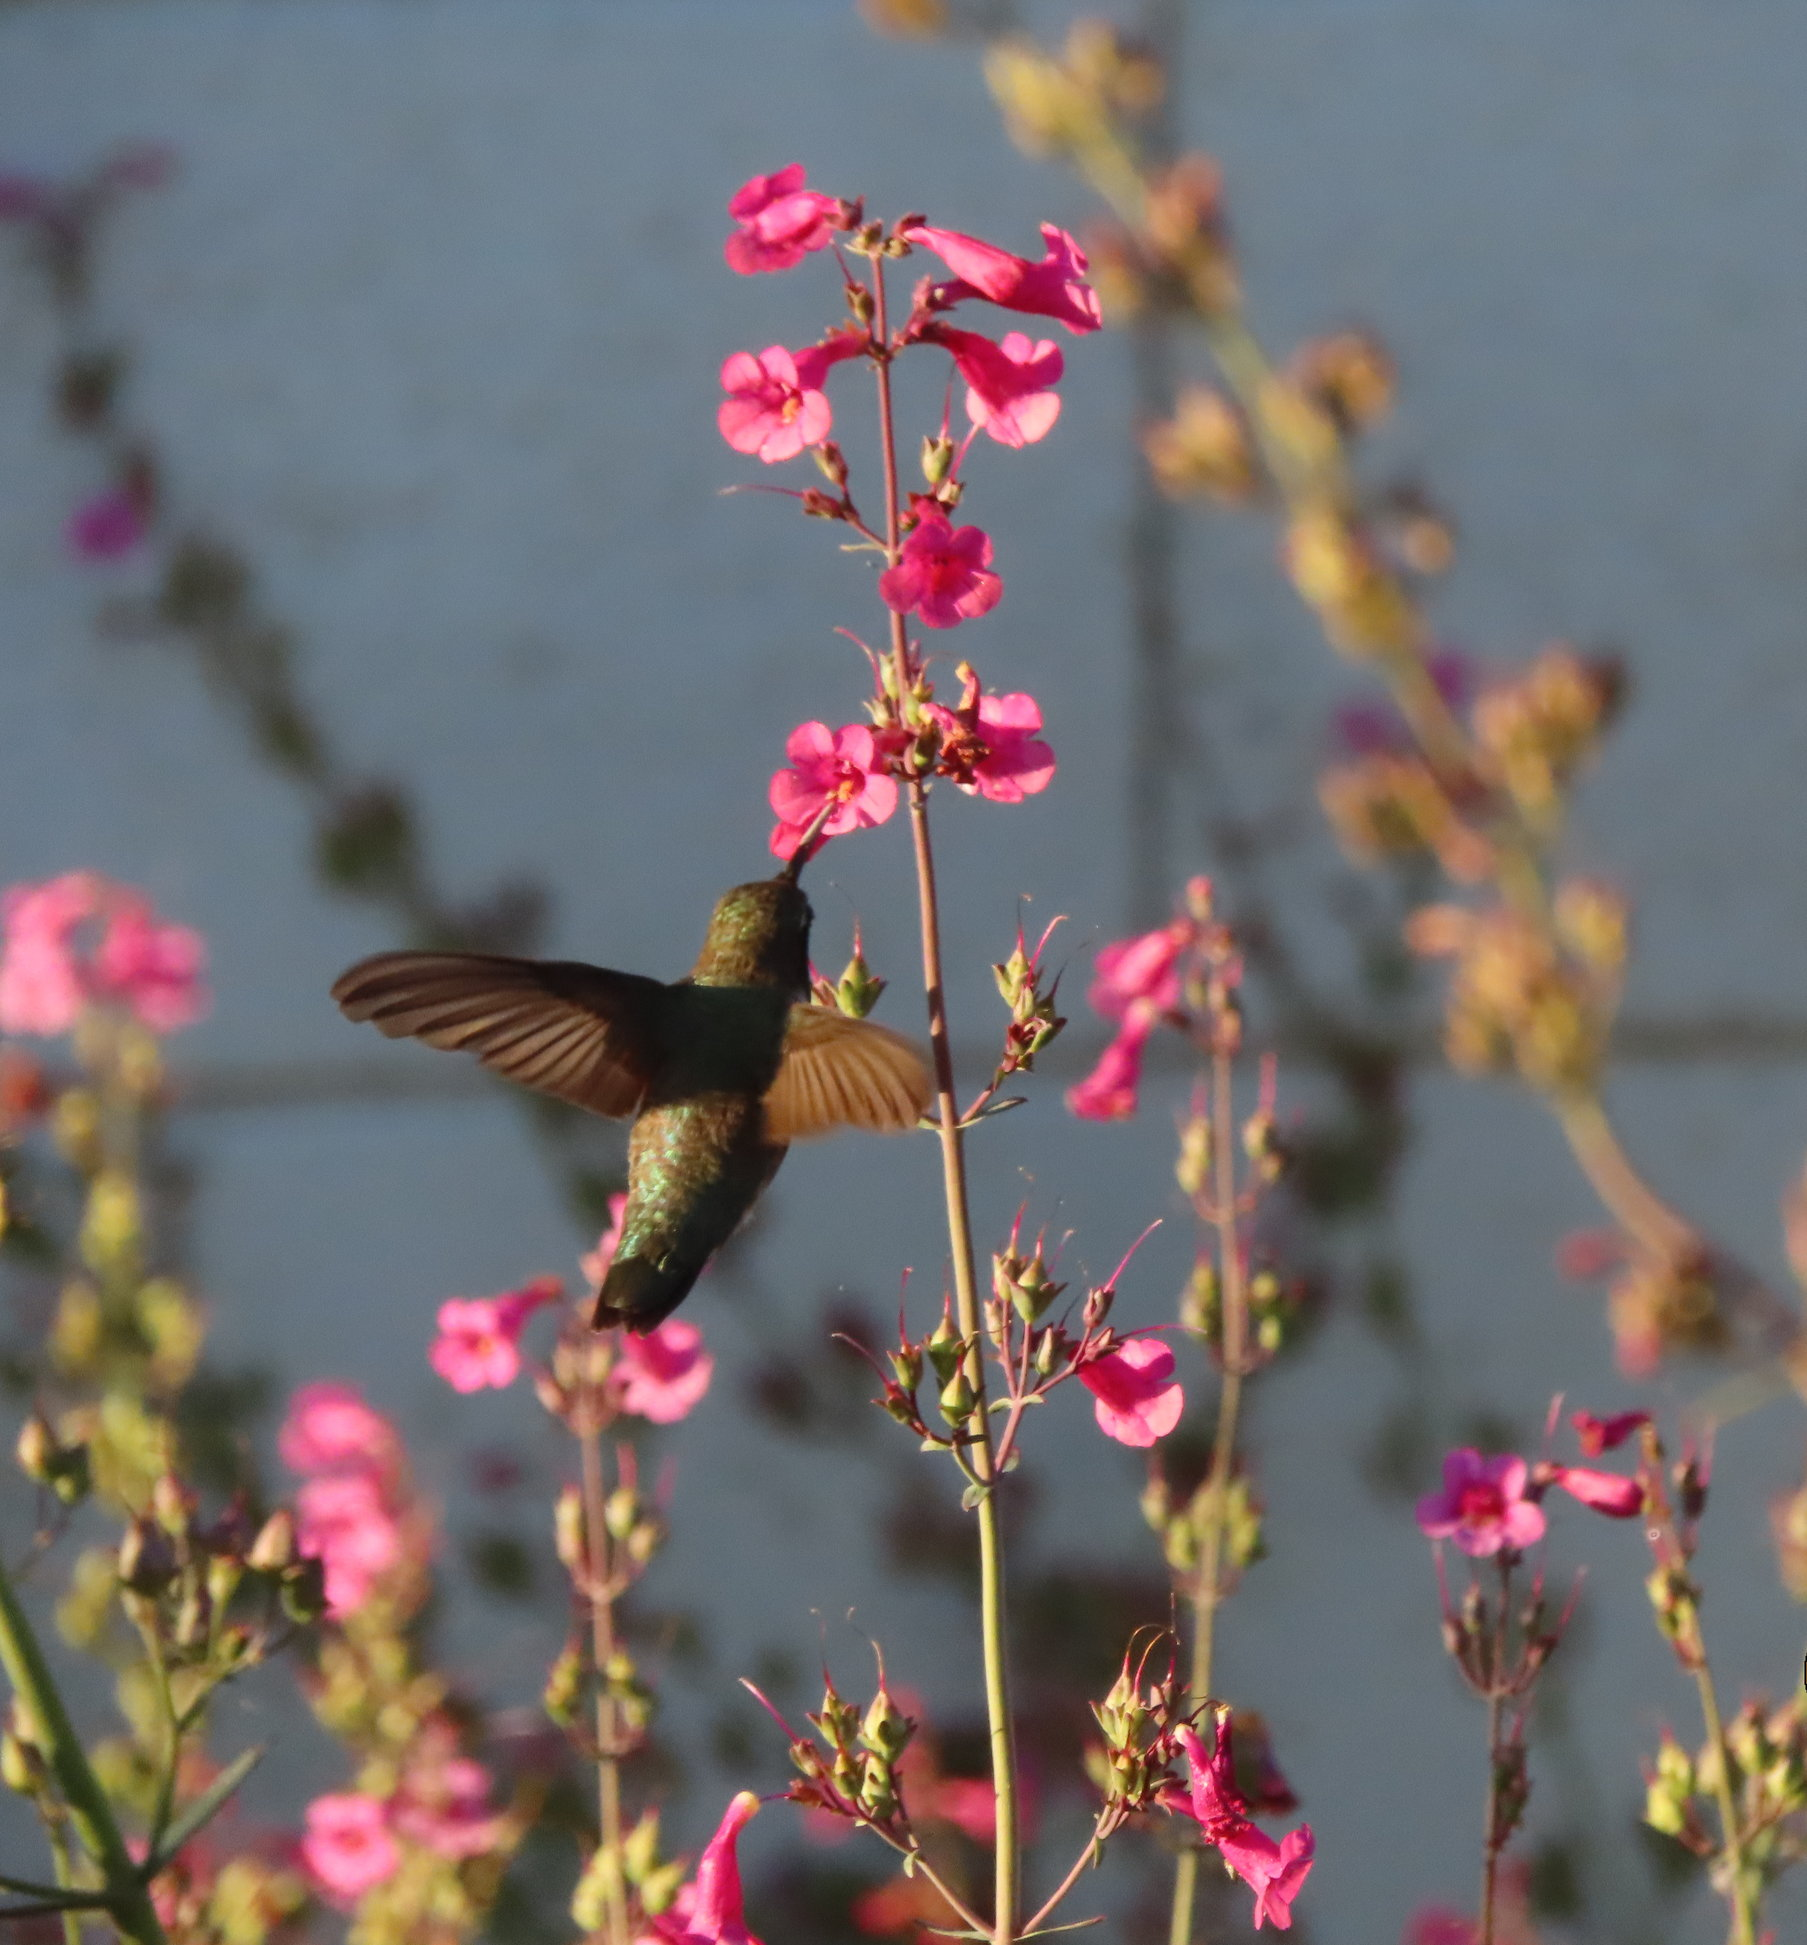 Hummingbird nectaring at a Parry's penstemon plant